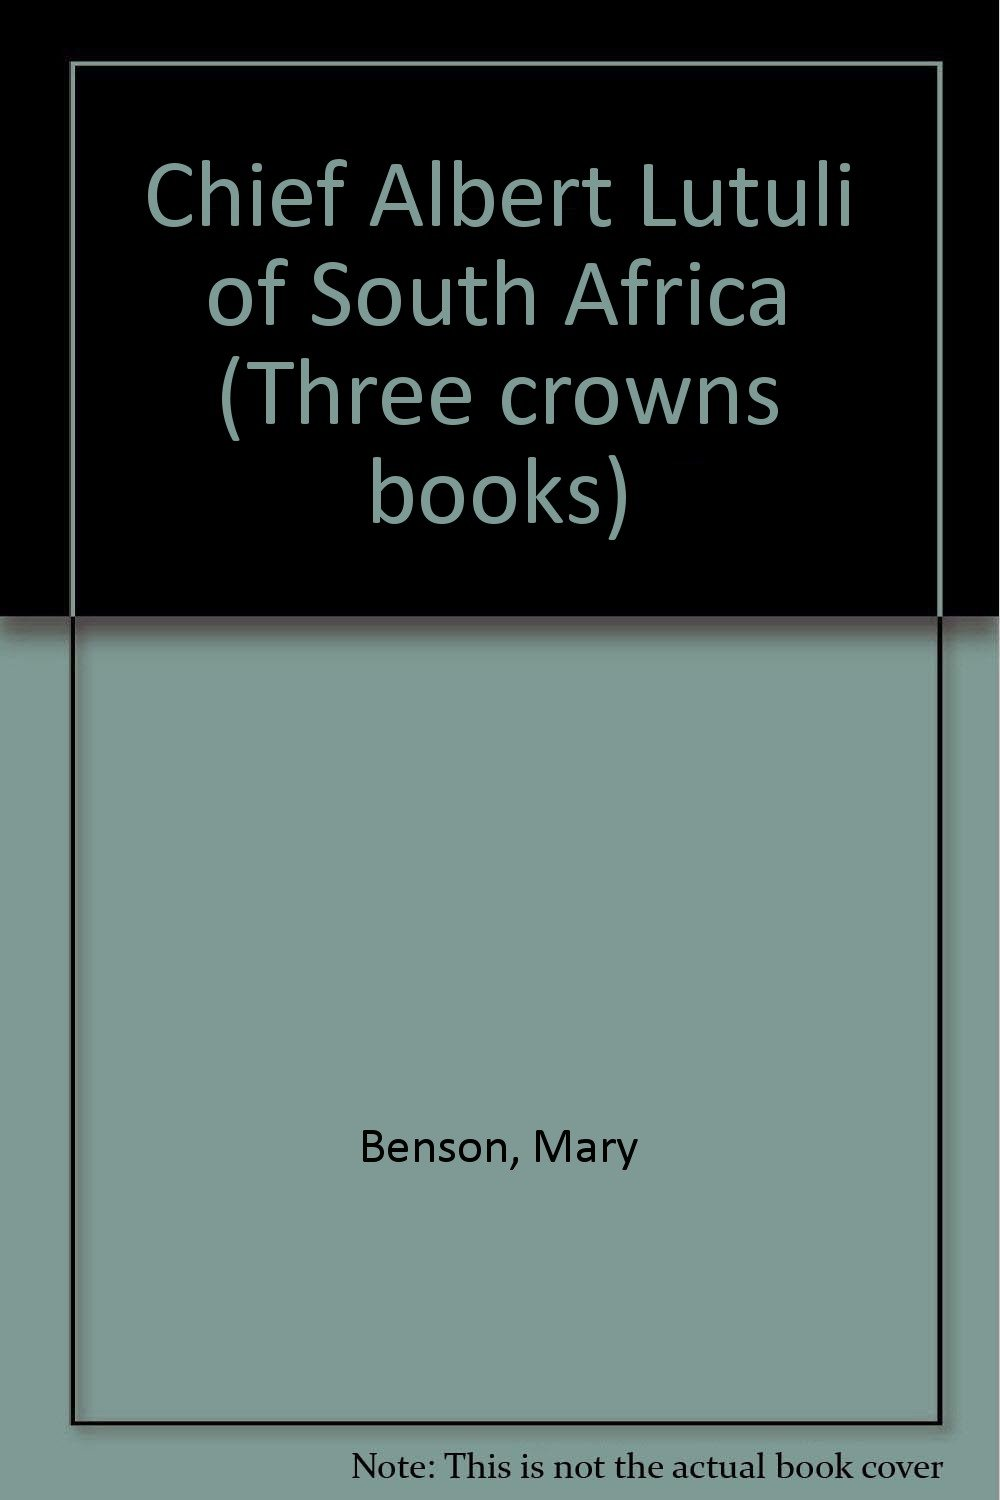 Chief Albert Lutuli of South Africa (Three crowns books)